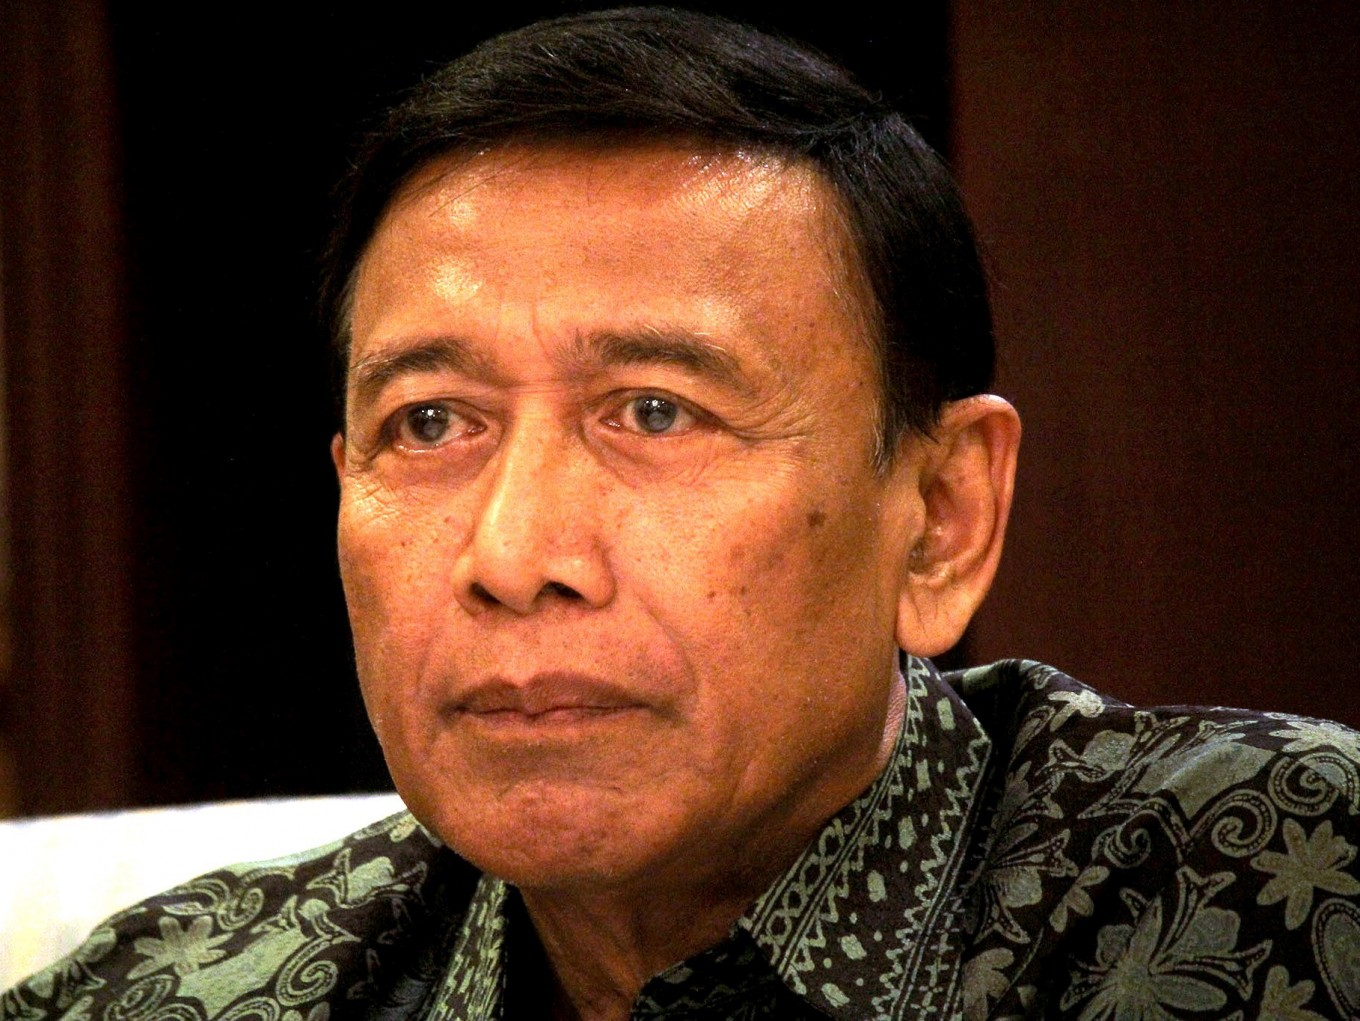 New protest wave aimed at preventing Jokowi inauguration: Wiranto